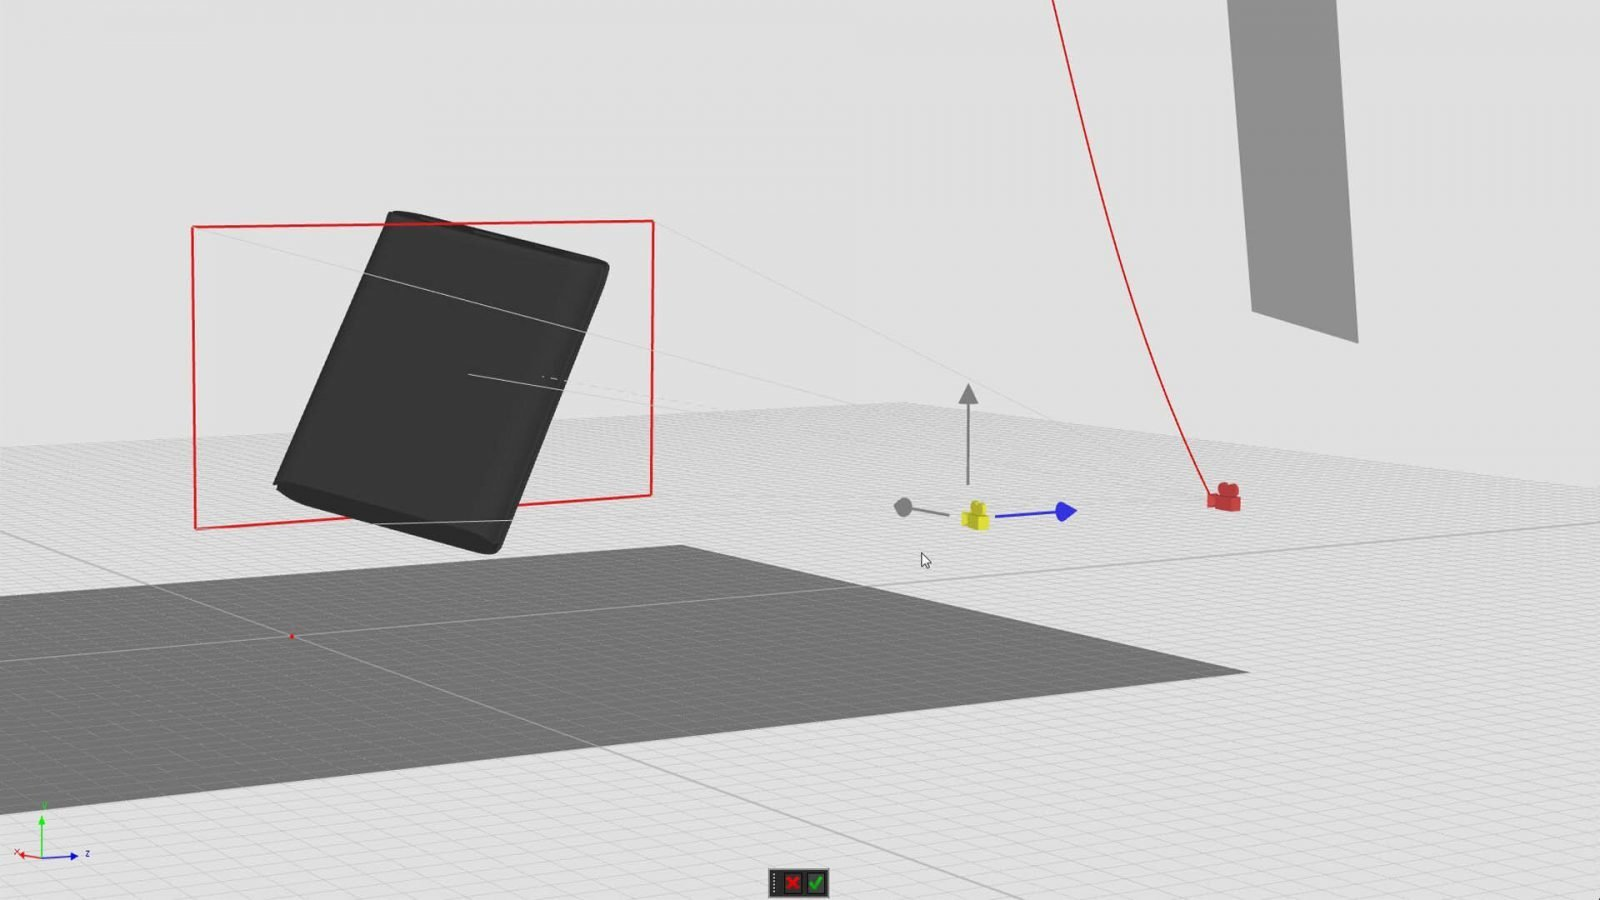 Move control points to make changes to the camera path in the geometry view